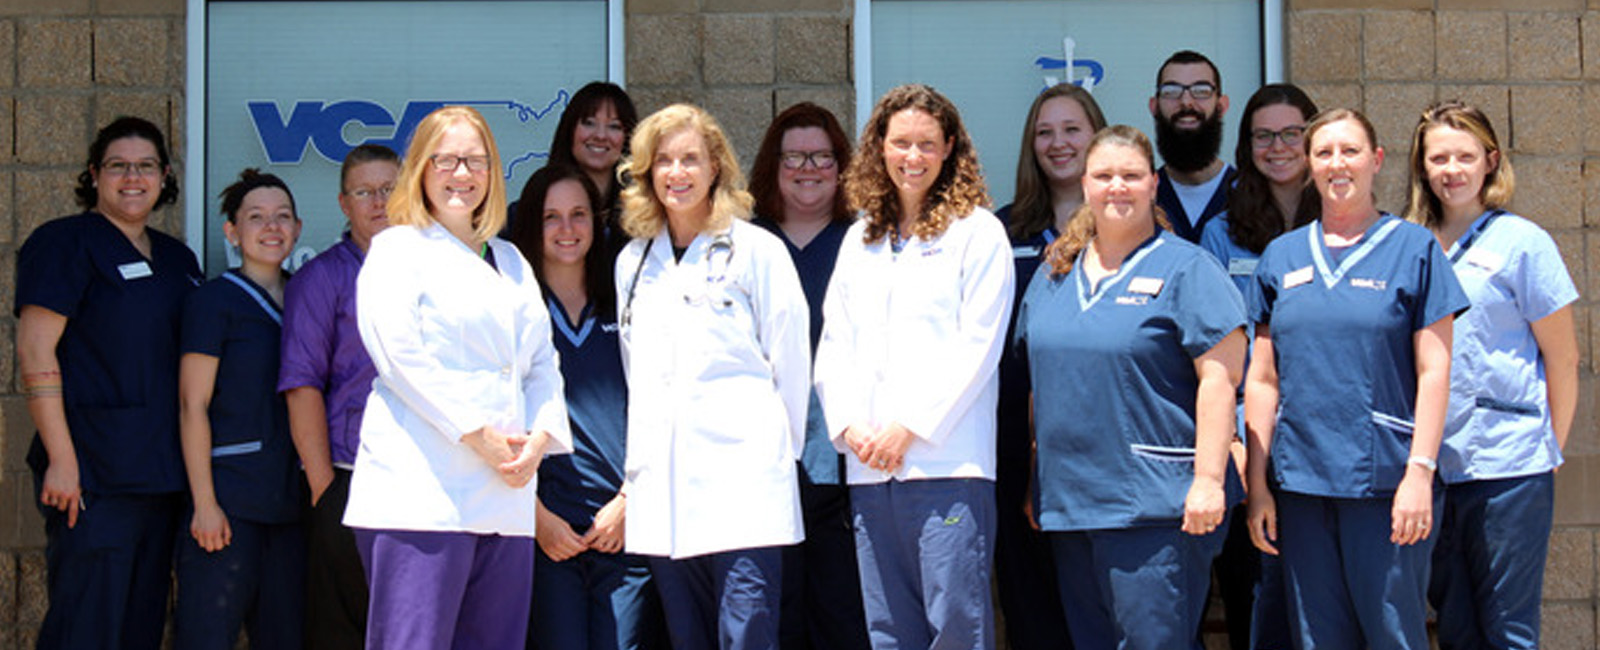 Homepage Team Picture of VCA Woodland South Animal Hospital